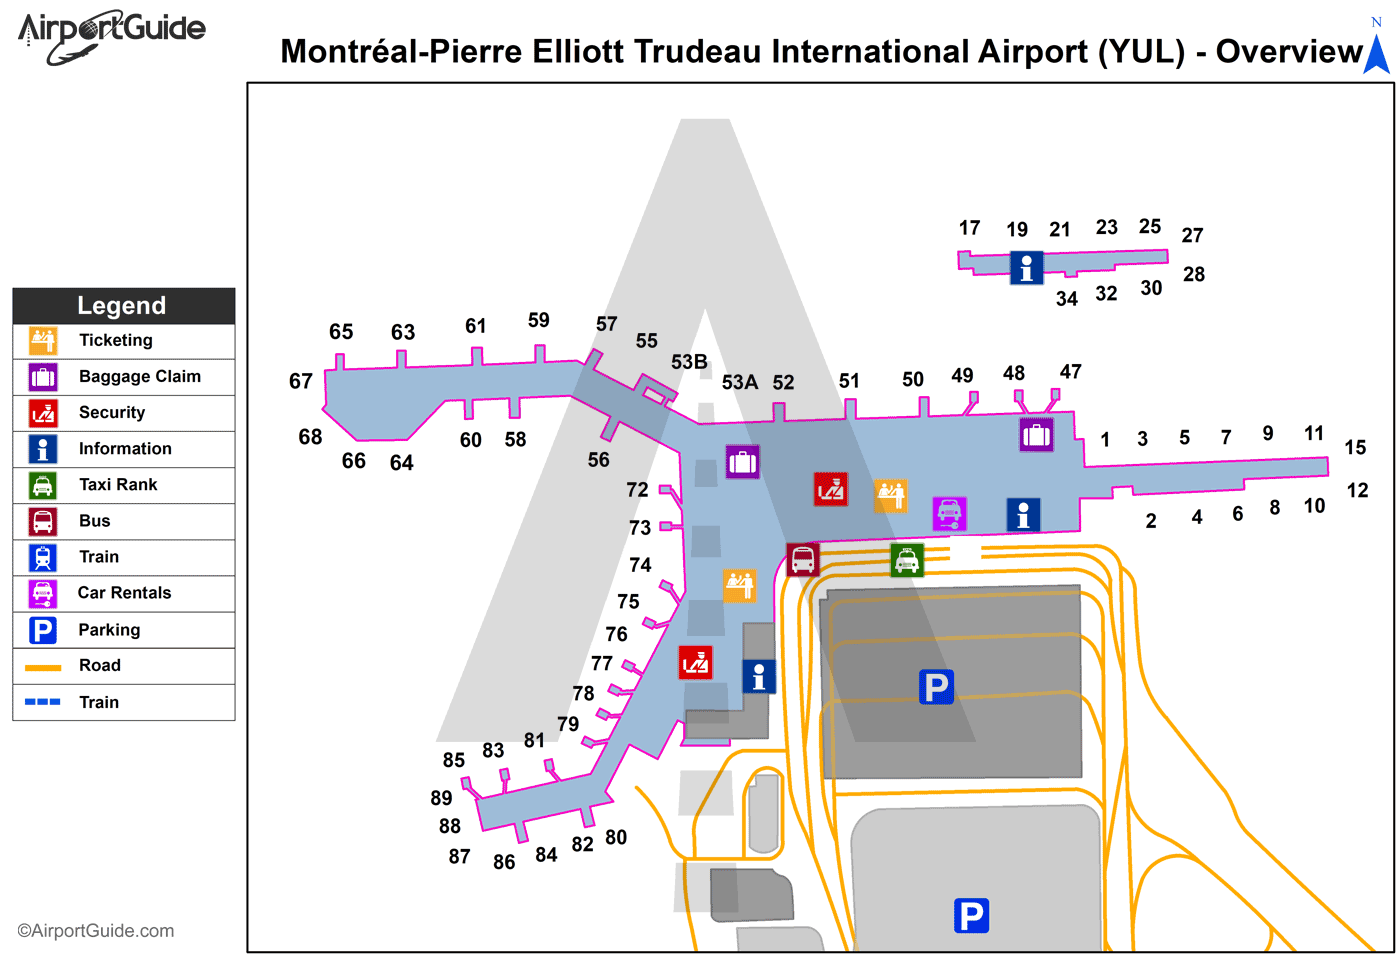 Montreal - Montreal / Pierre Elliott Trudeau International Airport (YUL) Airport Terminal Map - Overview